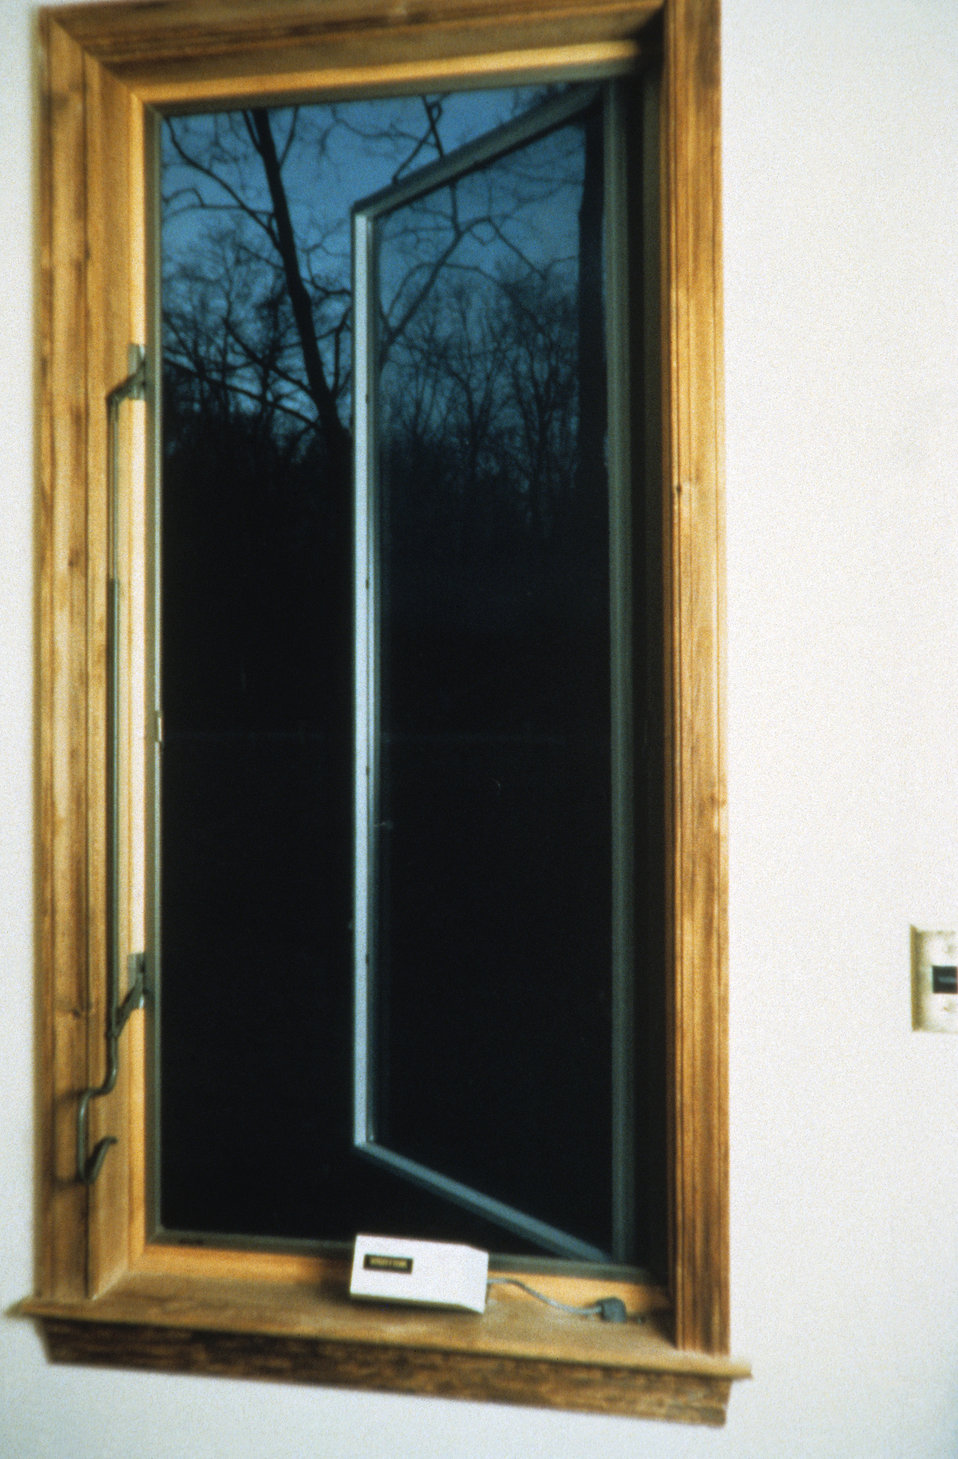 This 1995 image depicted an electronically controlled casement window mechanism. The window, opened here in this photograph, was opened and